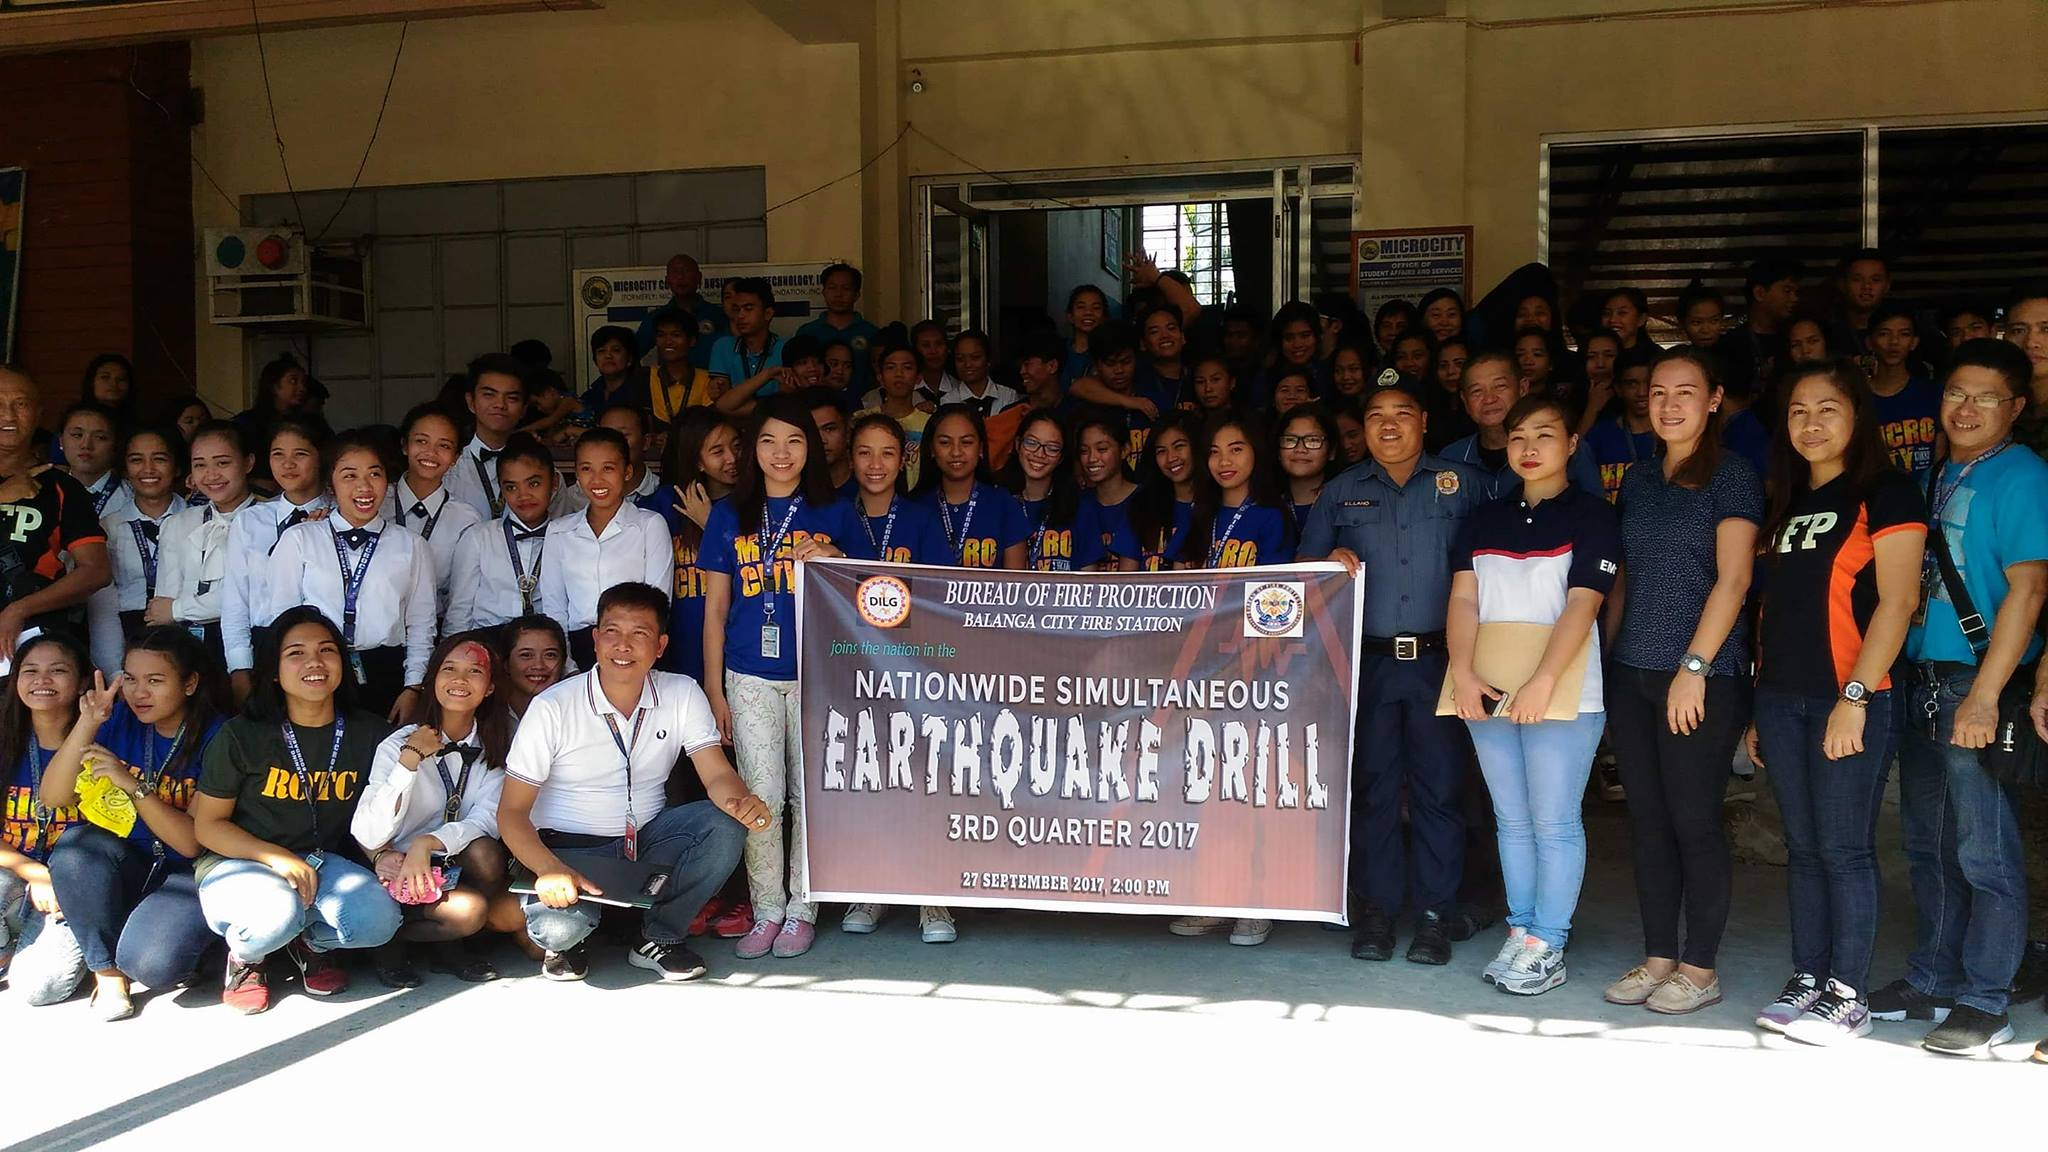 Earthquake and Fire Drill 2017